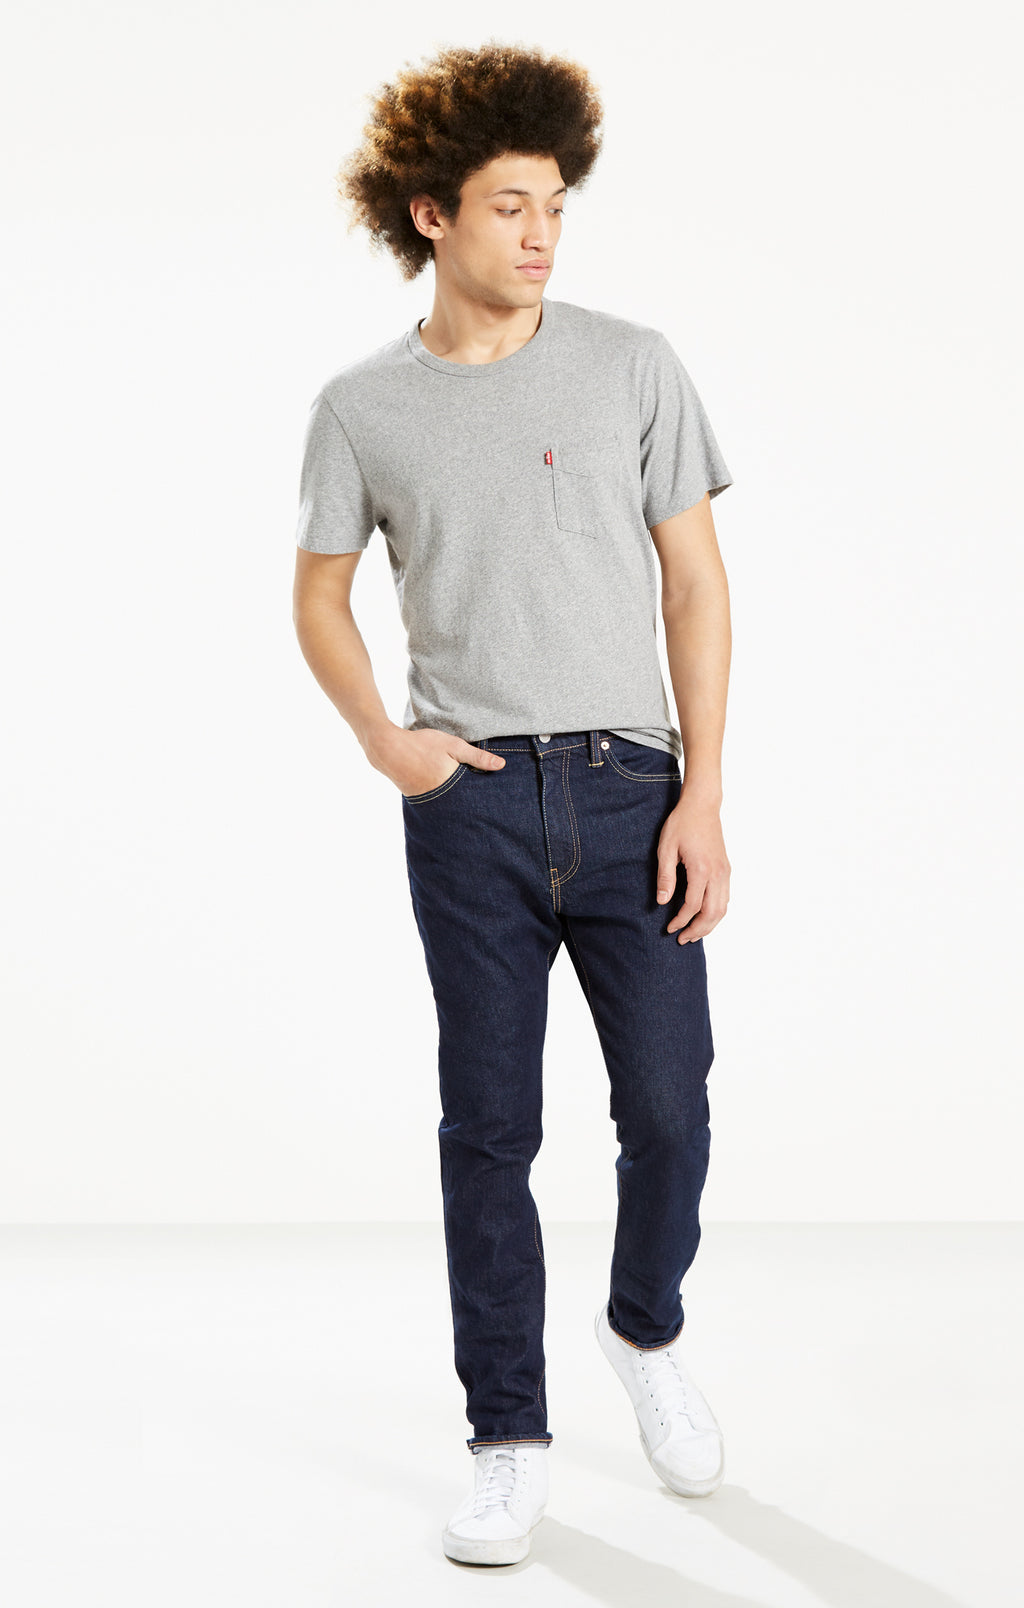 510™ Skinny Fit - Chain Rinse